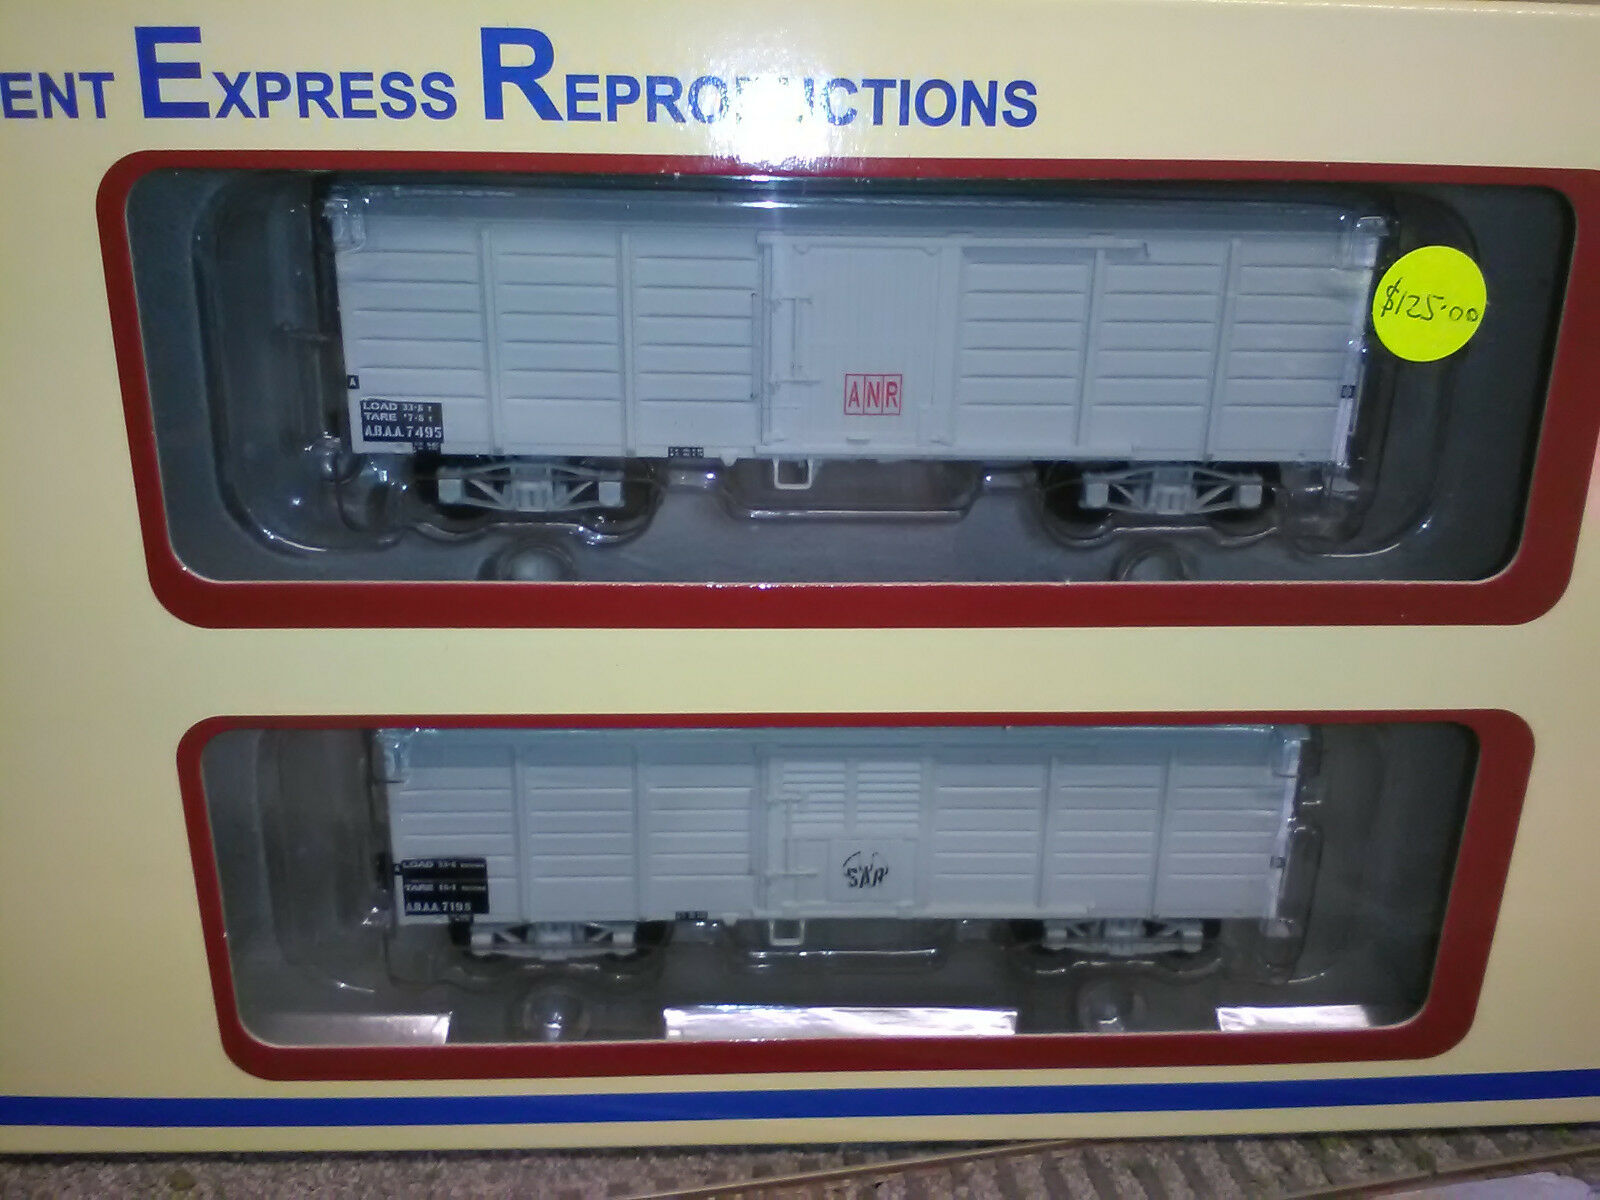 Orient Express Reproductions OR322 ANR ABAA/ABAA Van Light grigio Flat roof BNIB